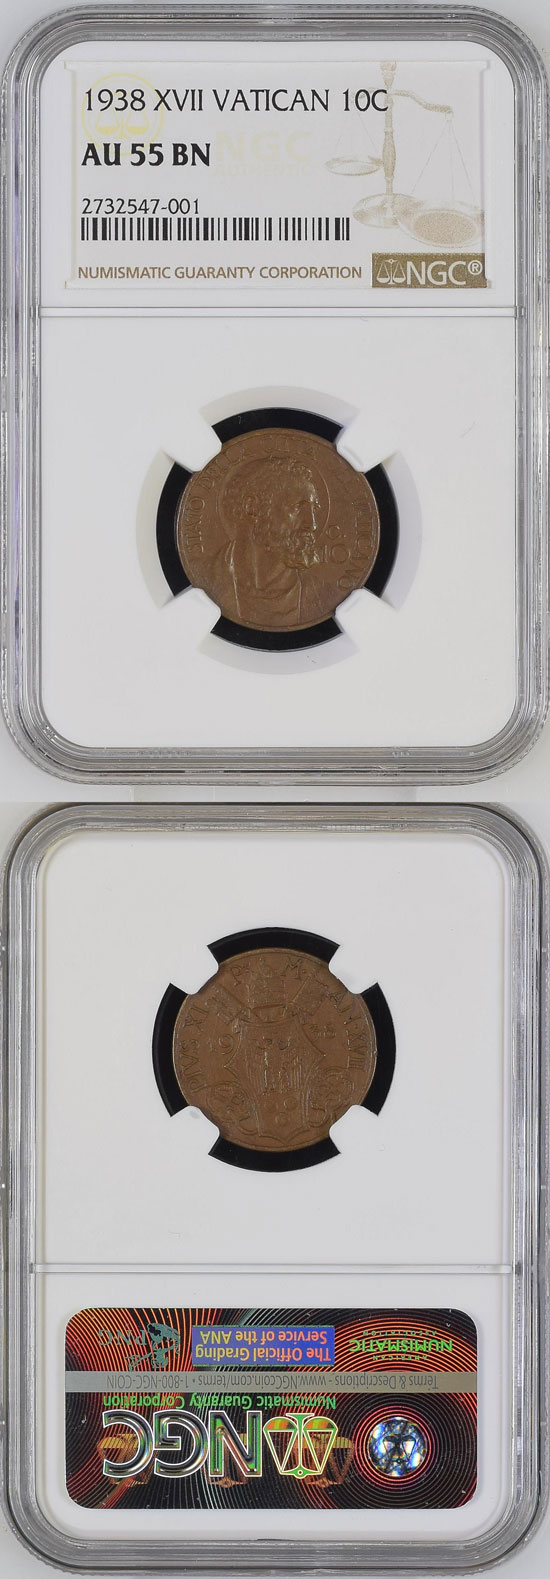 1938 Vatican 10 Centesimi NGC AU55 Photo